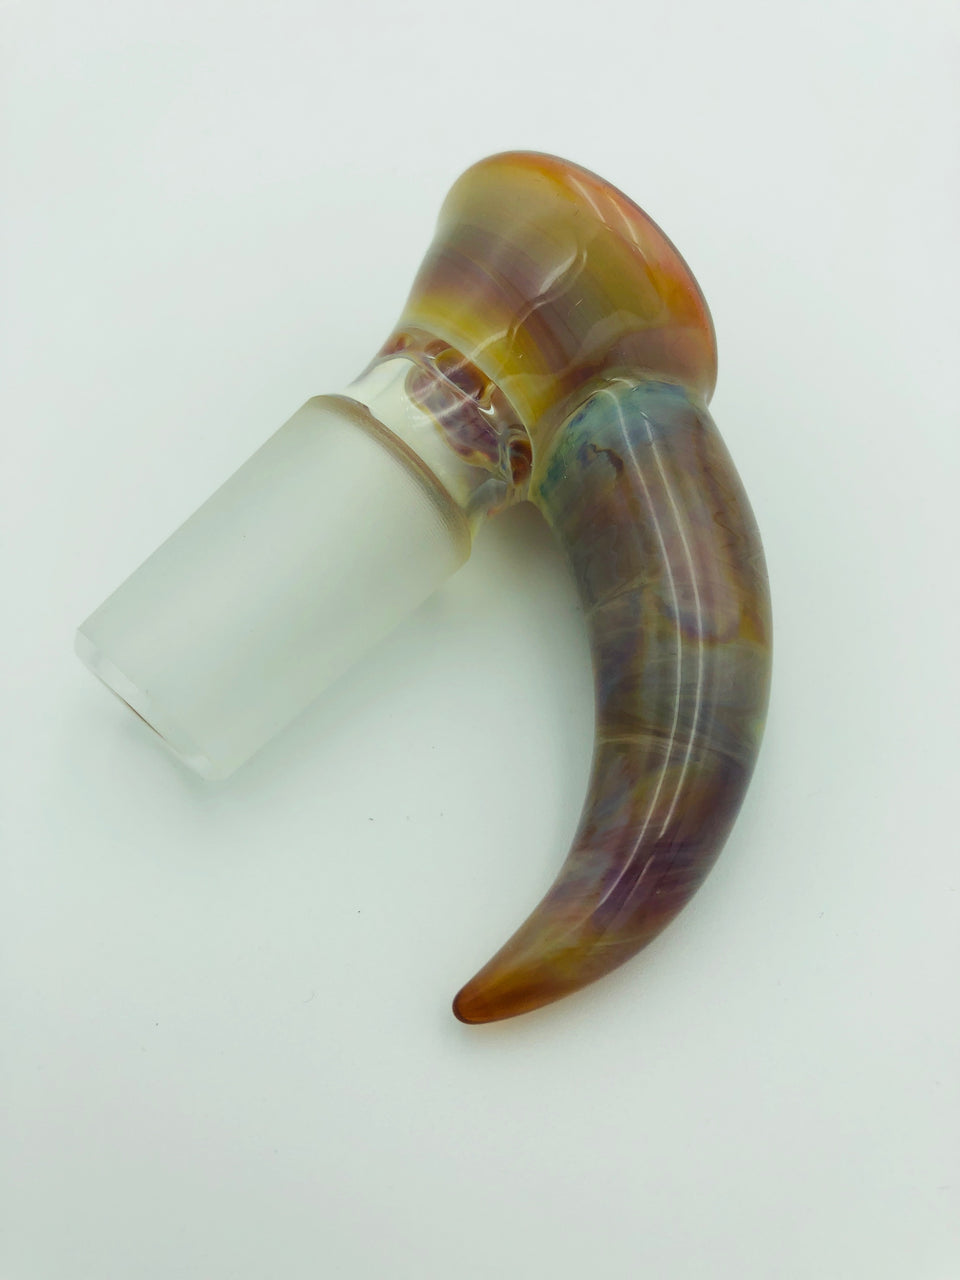 Valts Glass 18mm Slide